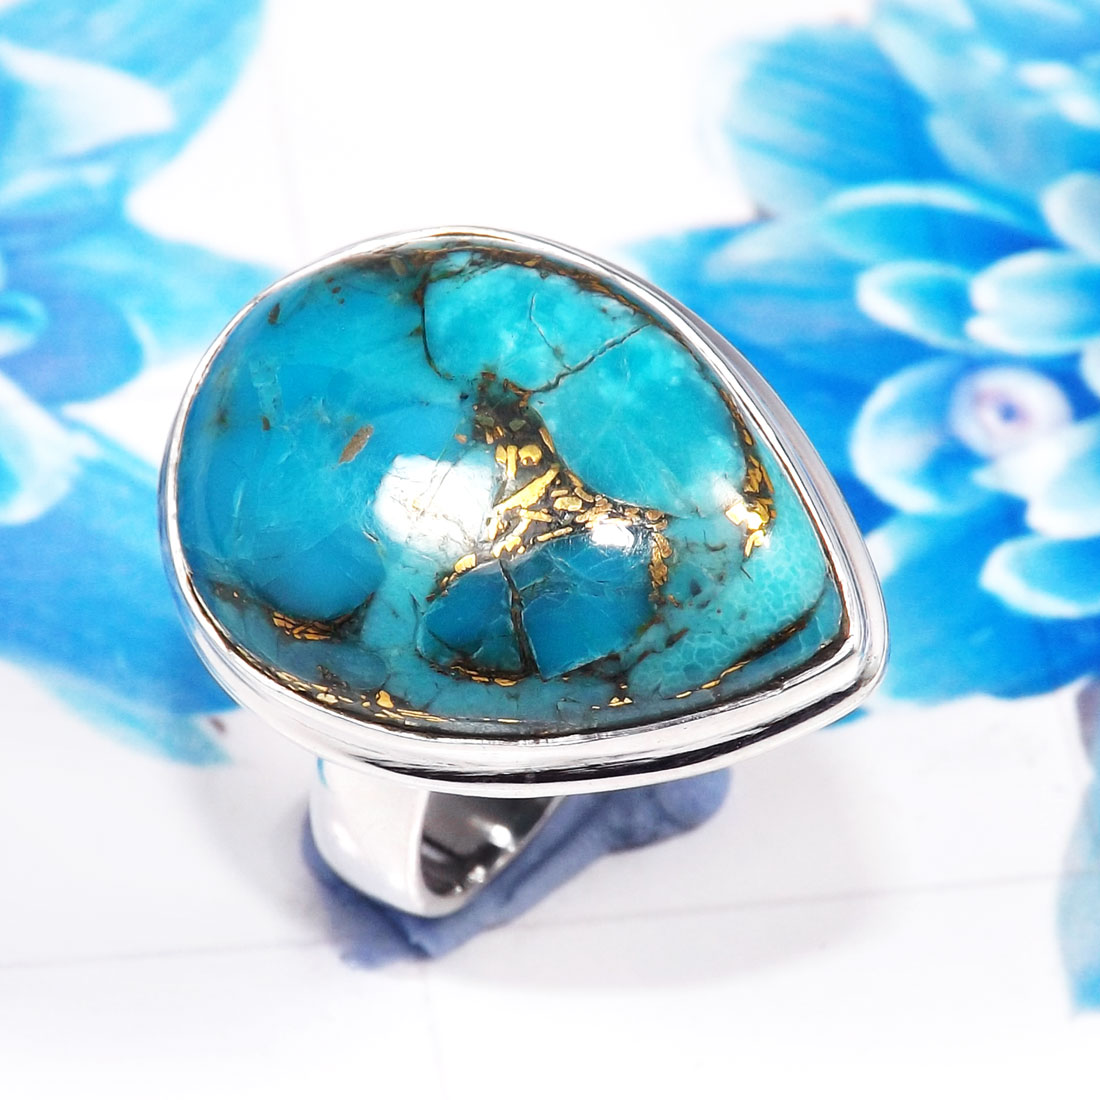 in metallic gold jewelry rings lyst kors turquoise stone michael product stacked